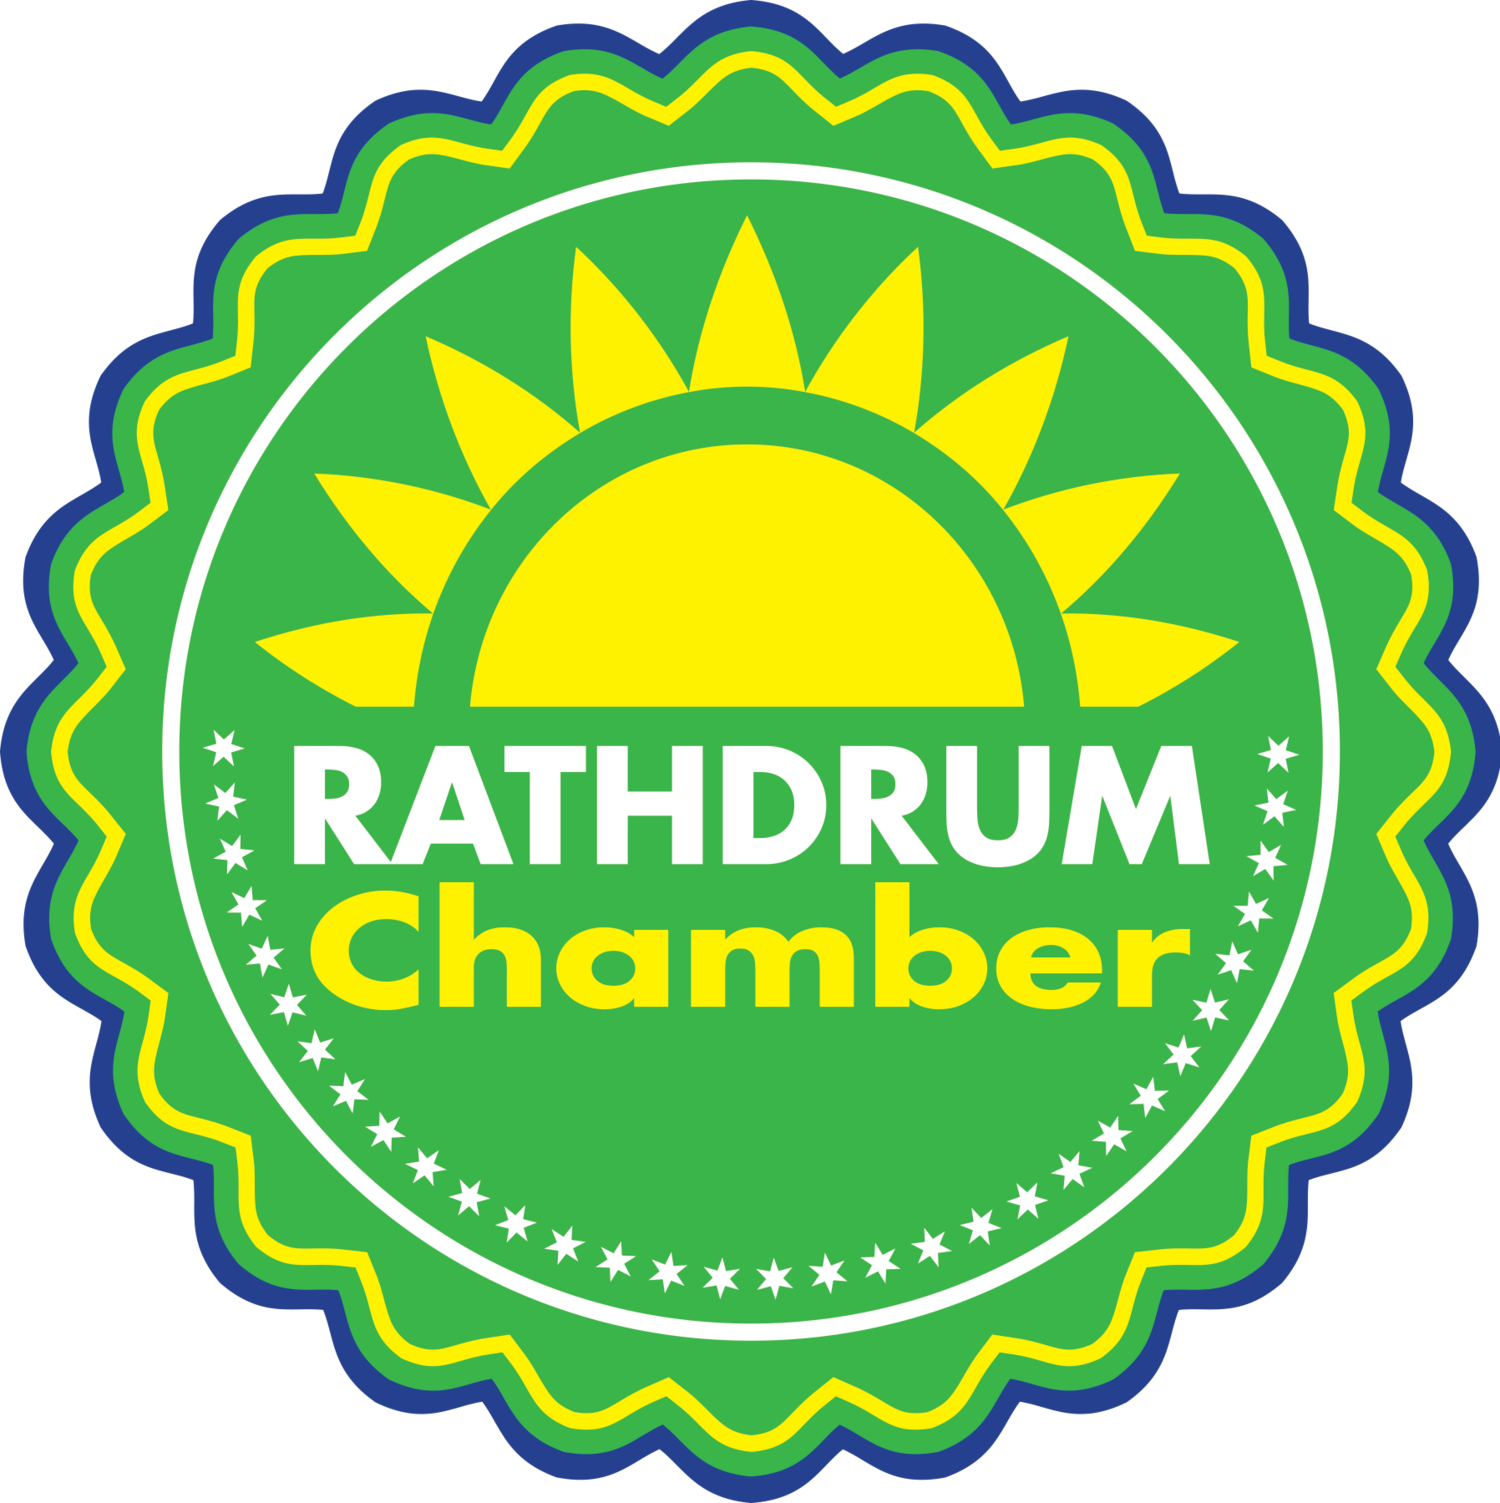 Rathdrum Chamber of Commerce